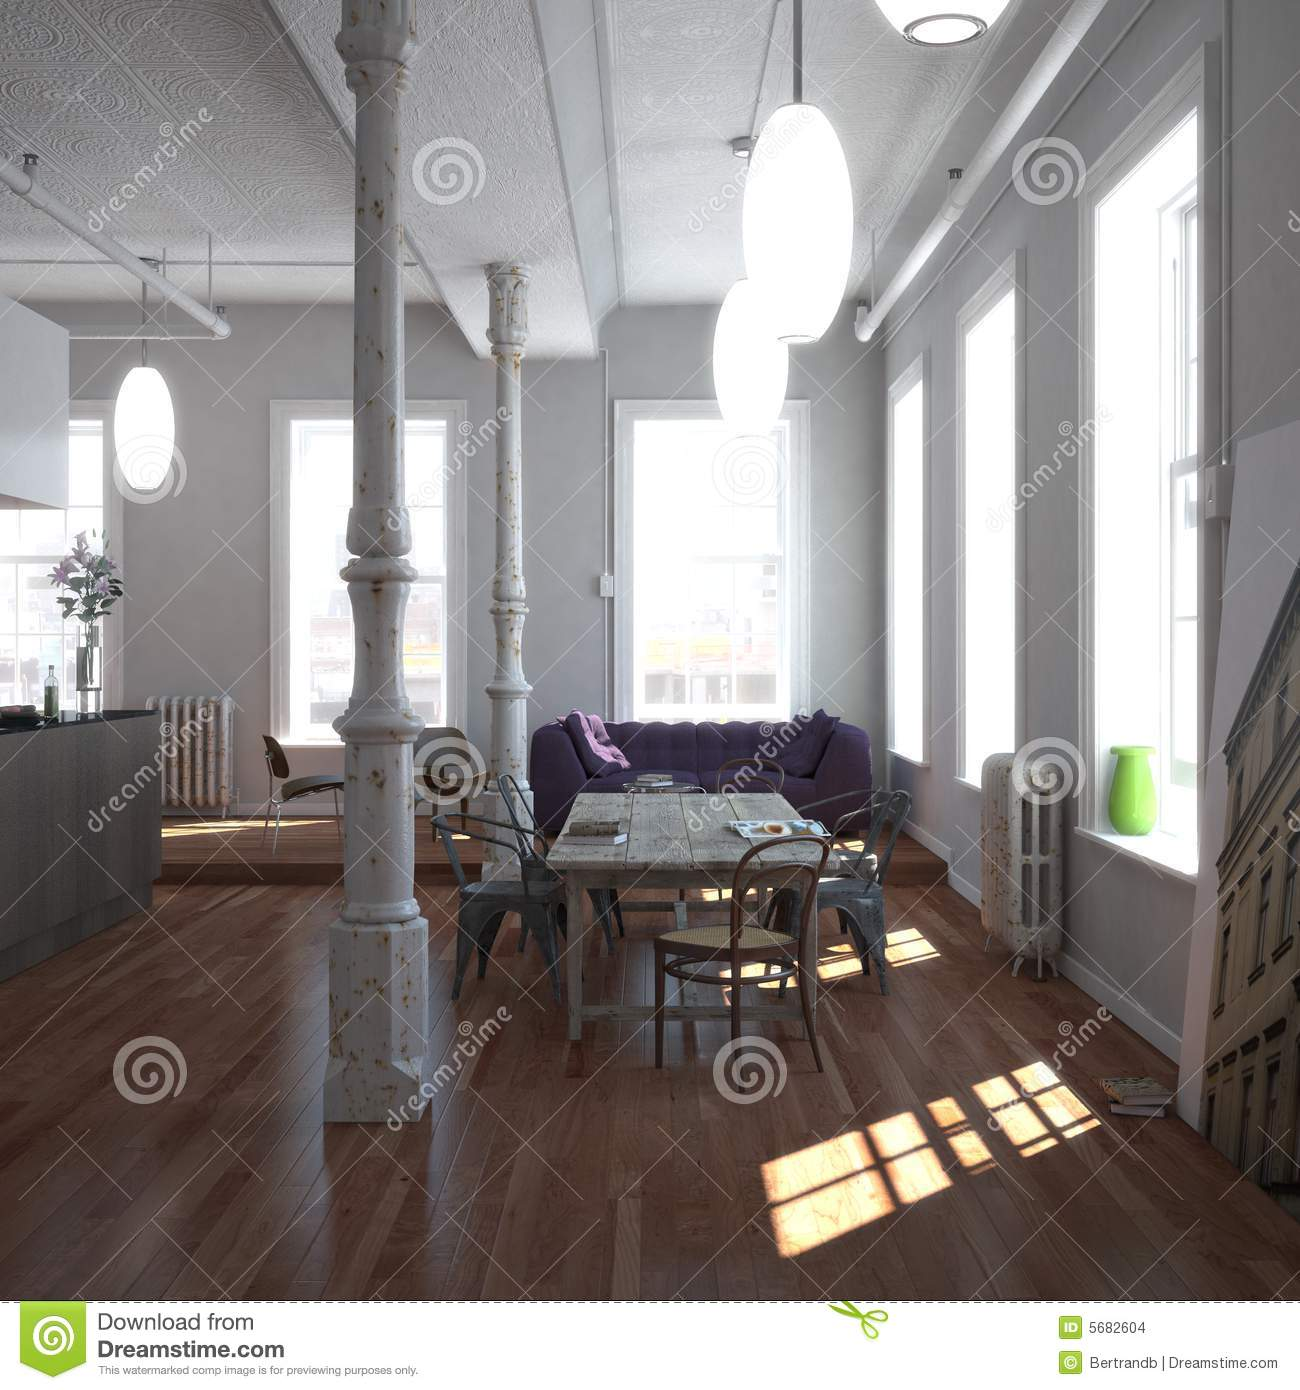 oak kitchen table and chairs remodel orange county classic new-york loft stock photo. image of comfortable ...